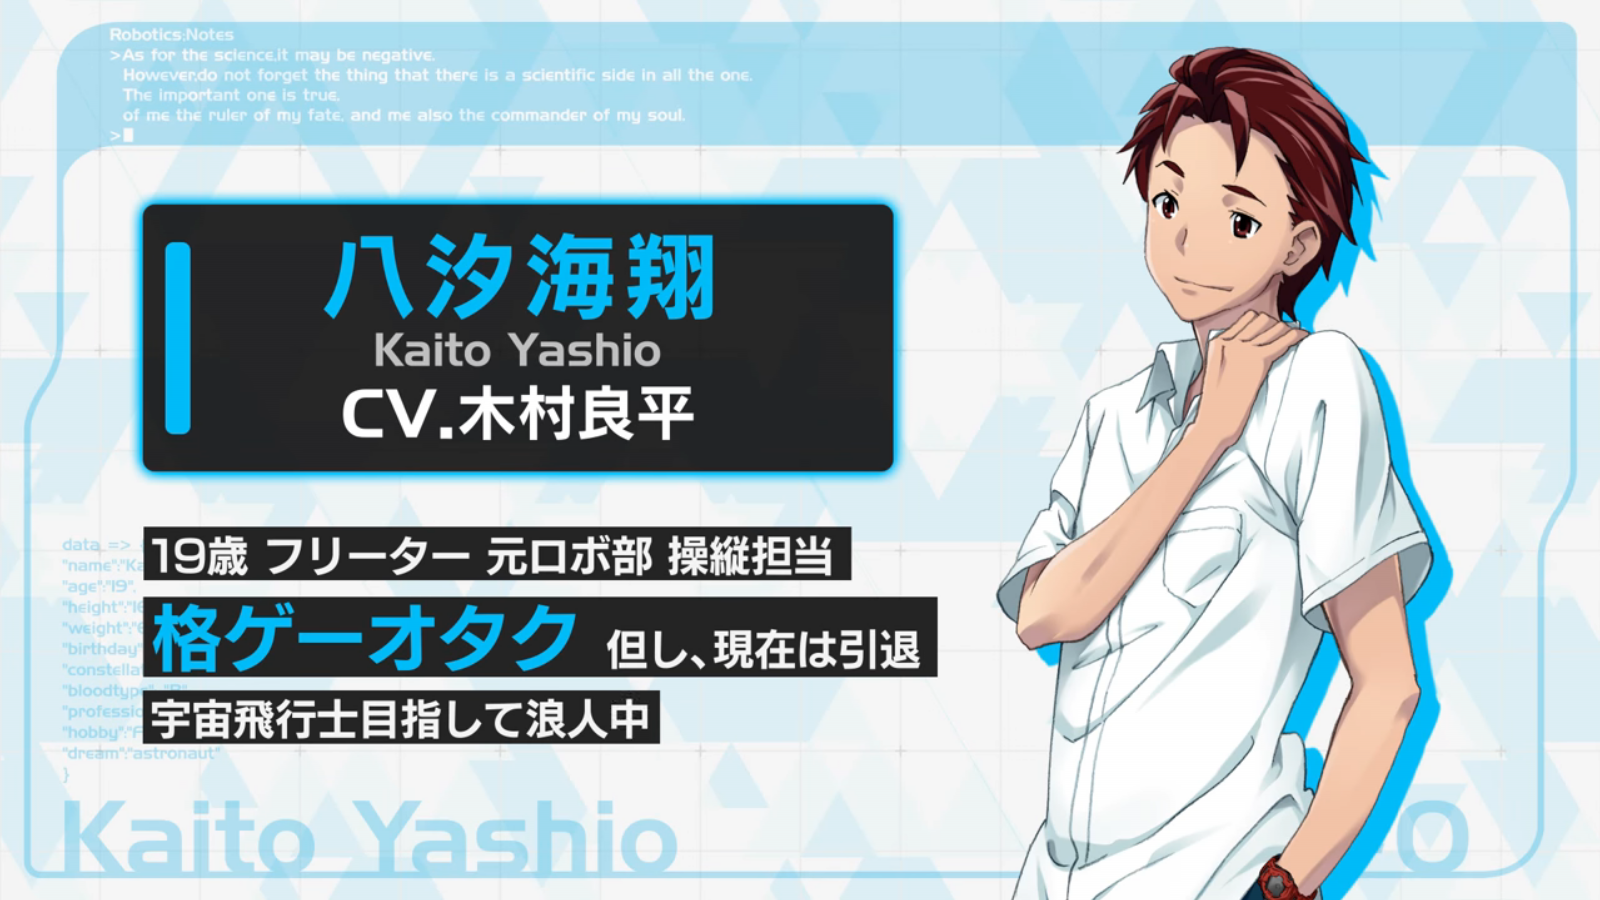 Robotics Notes Dash Trailer Introduces Its Protagonist Nintendo